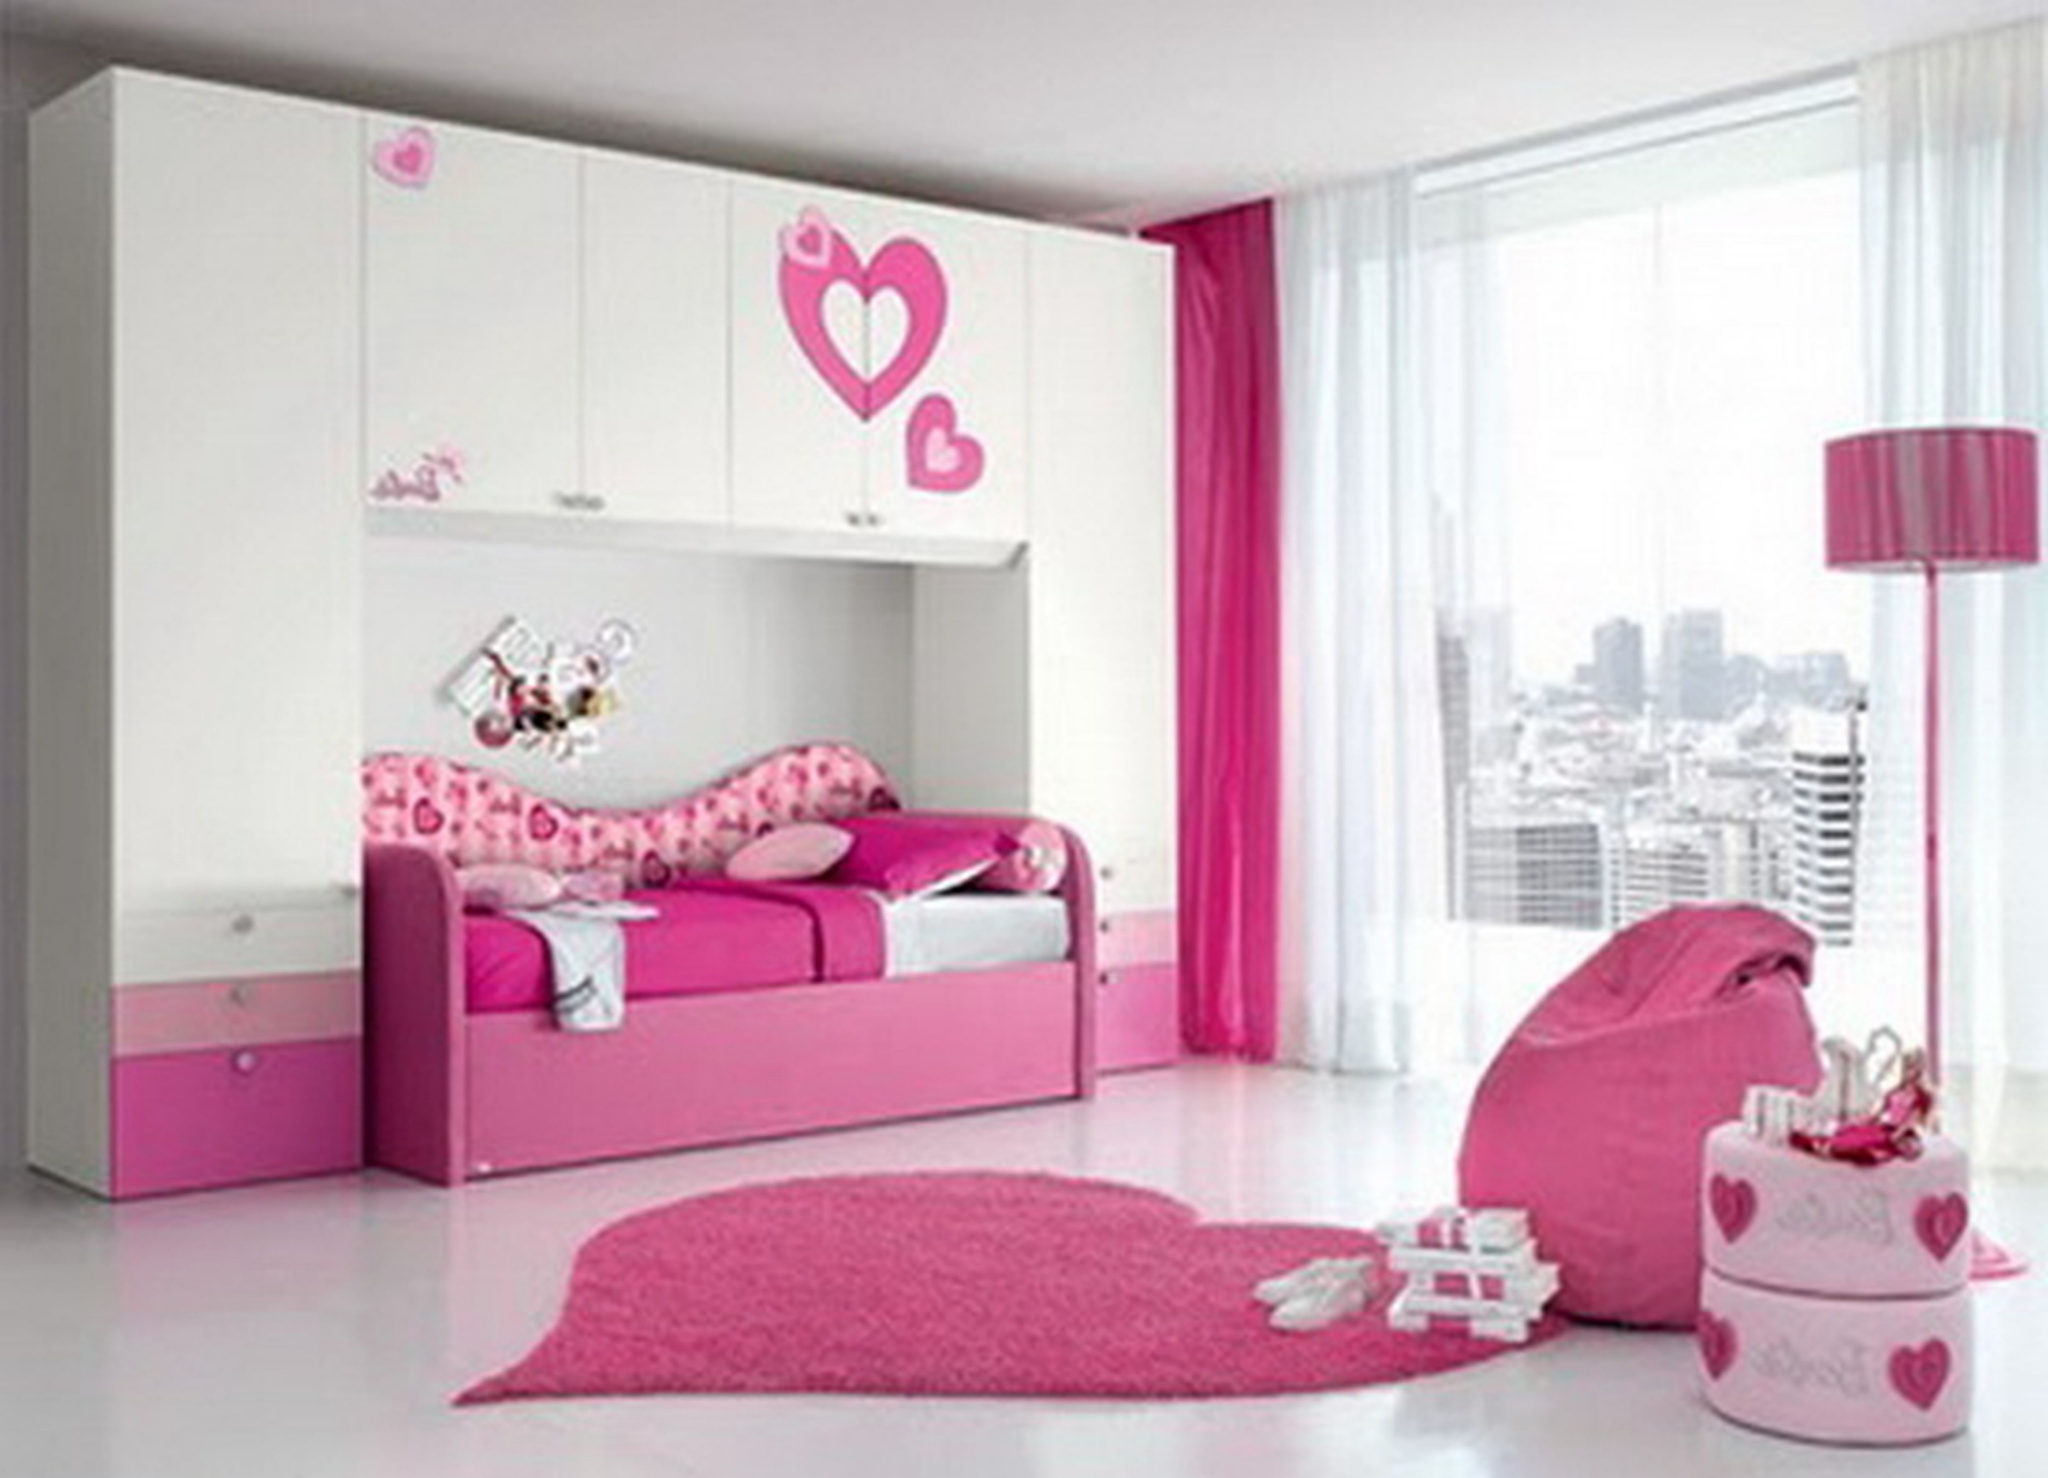 Best Decor Ideas For Girl Kids Room - Wendy Peterson on Girls Room Decor  id=36963